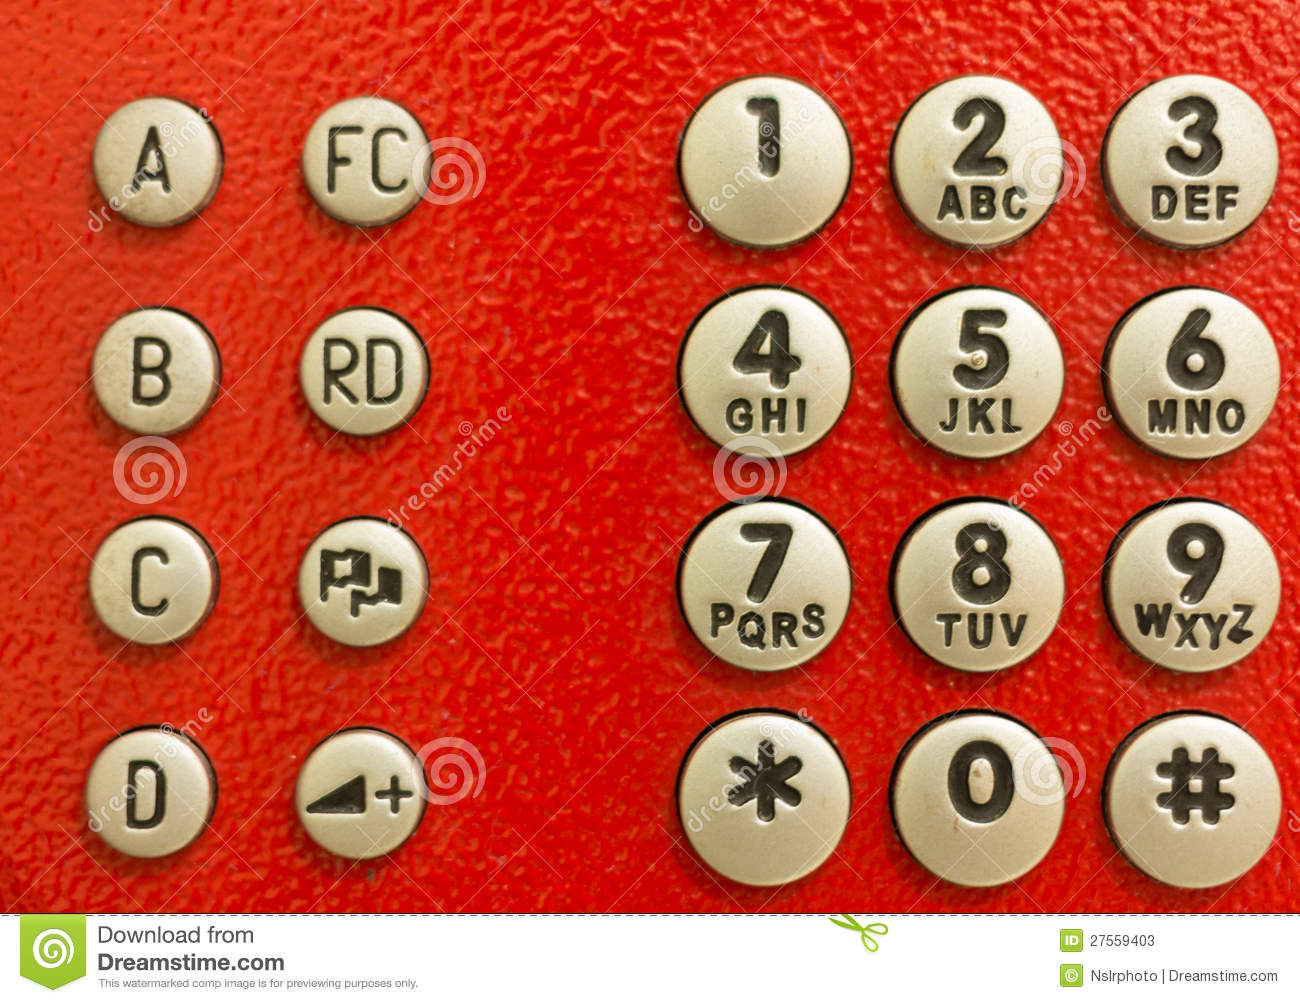 Red public phone dial pad stock image  Image of dial - 27559403